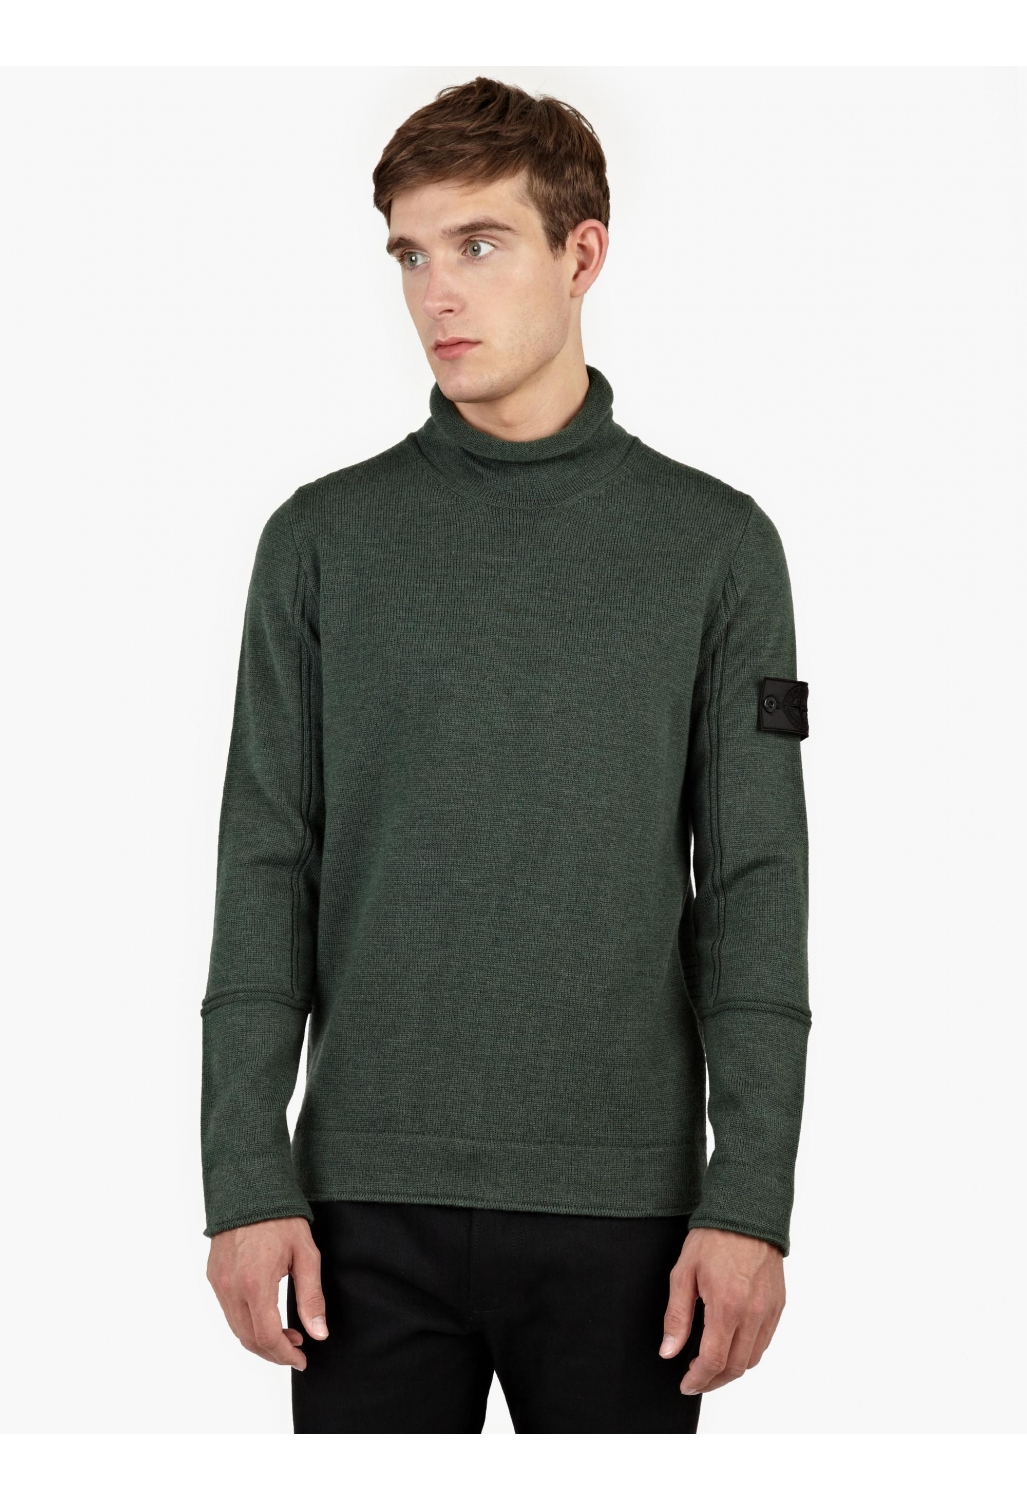 stone island green wool roll neck sweater in green for men lyst. Black Bedroom Furniture Sets. Home Design Ideas